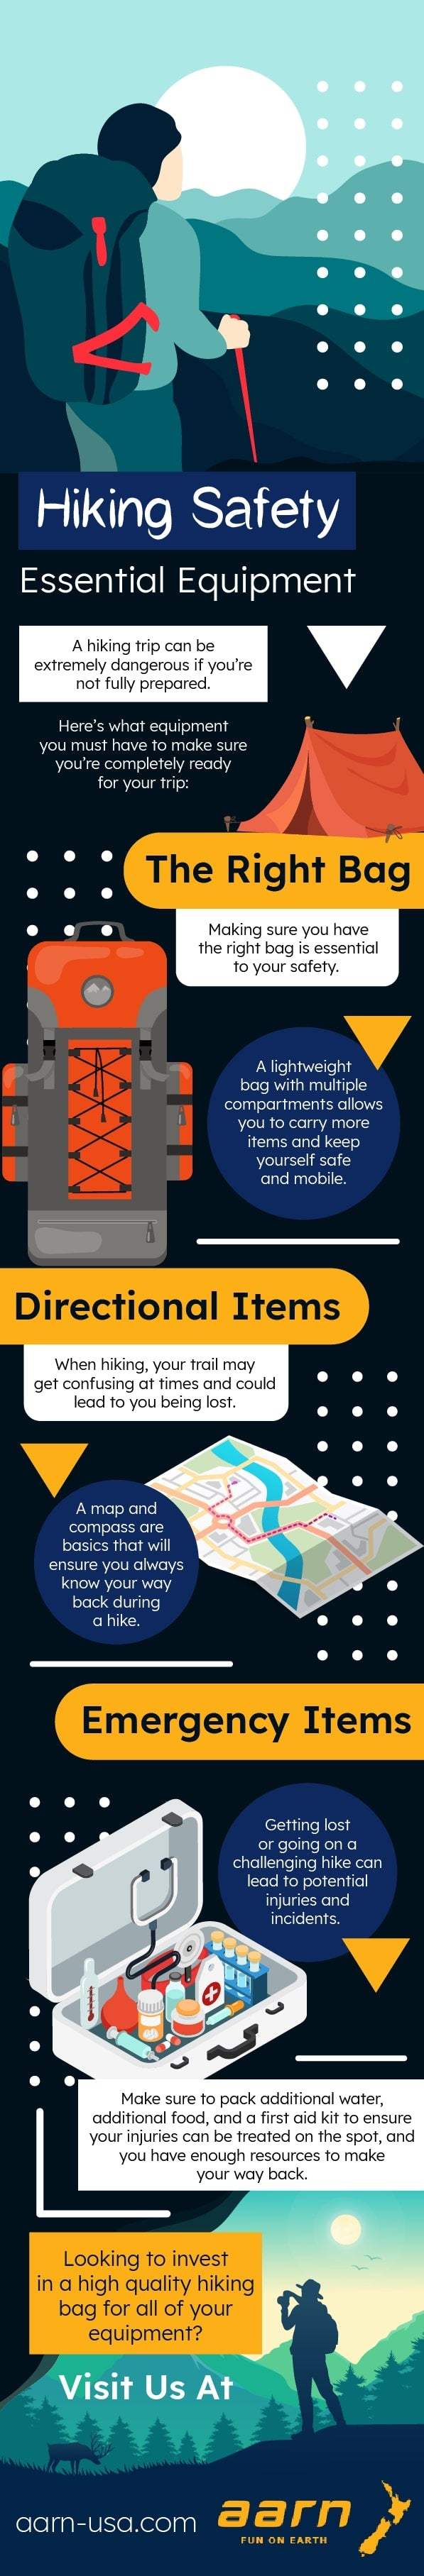 Hiking Safety Essential Equipment | Infographic